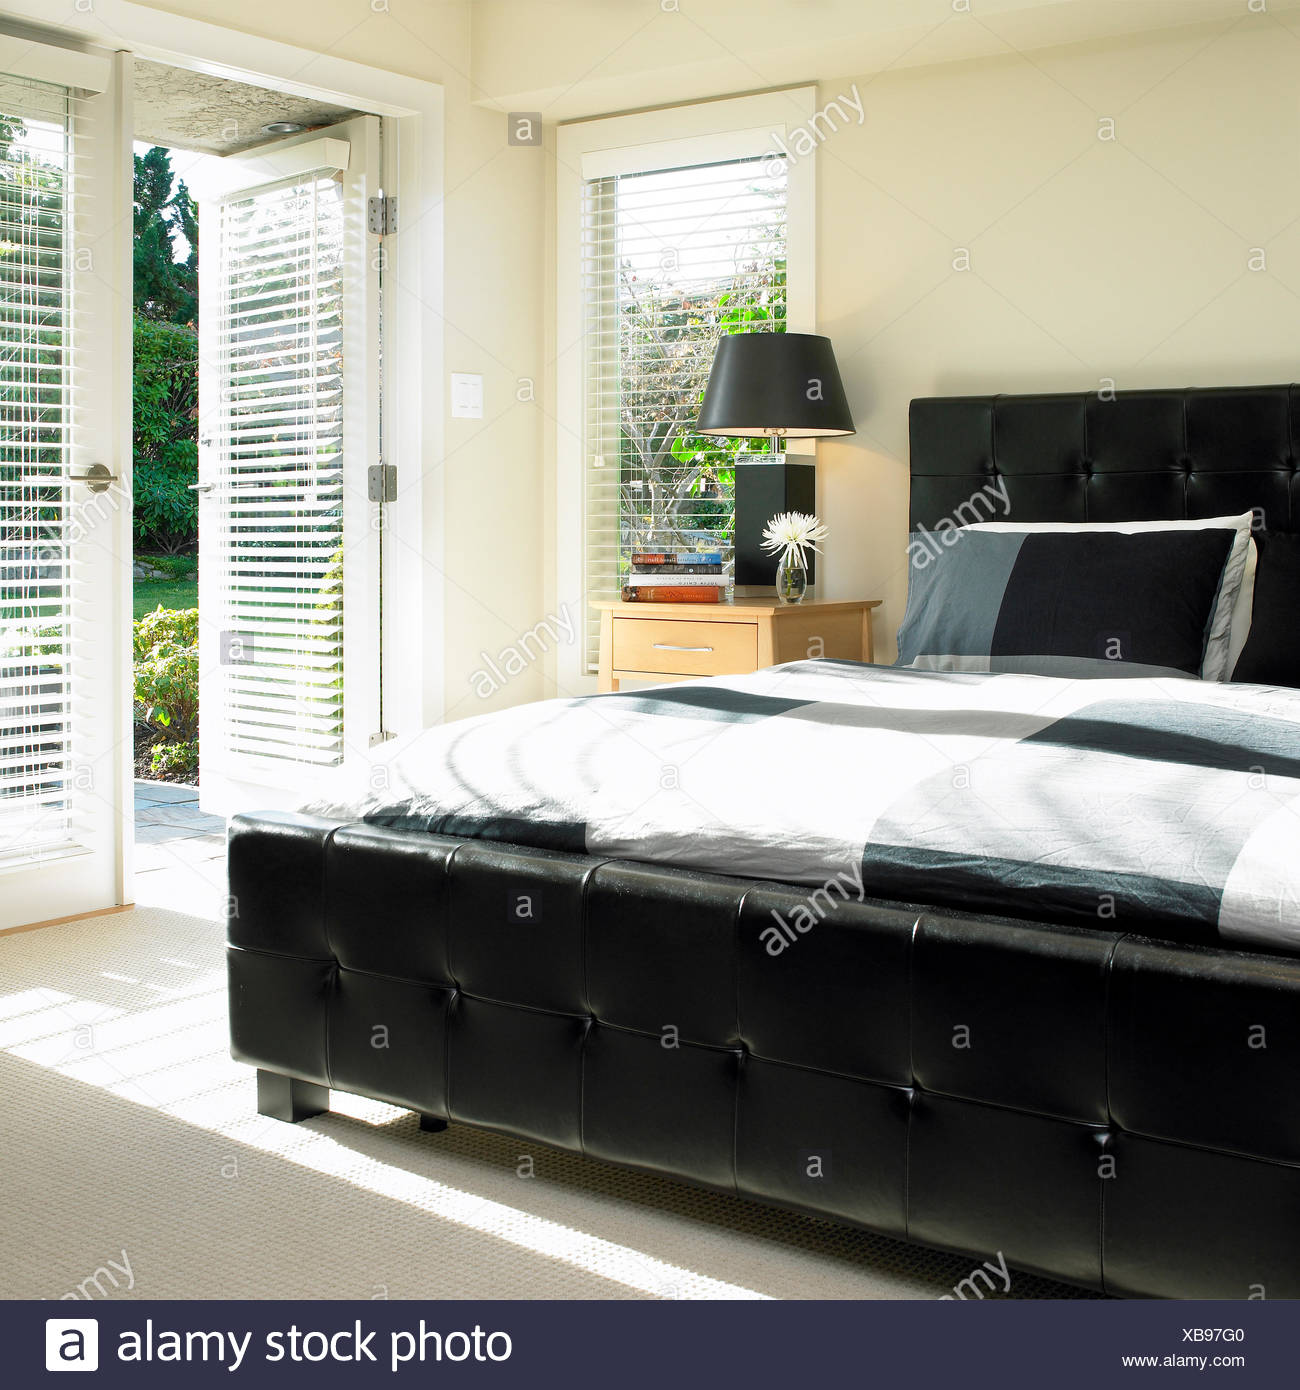 Bedroom With Black Leather Tufted Headboard And French Doors To Garden Stock Photo Alamy